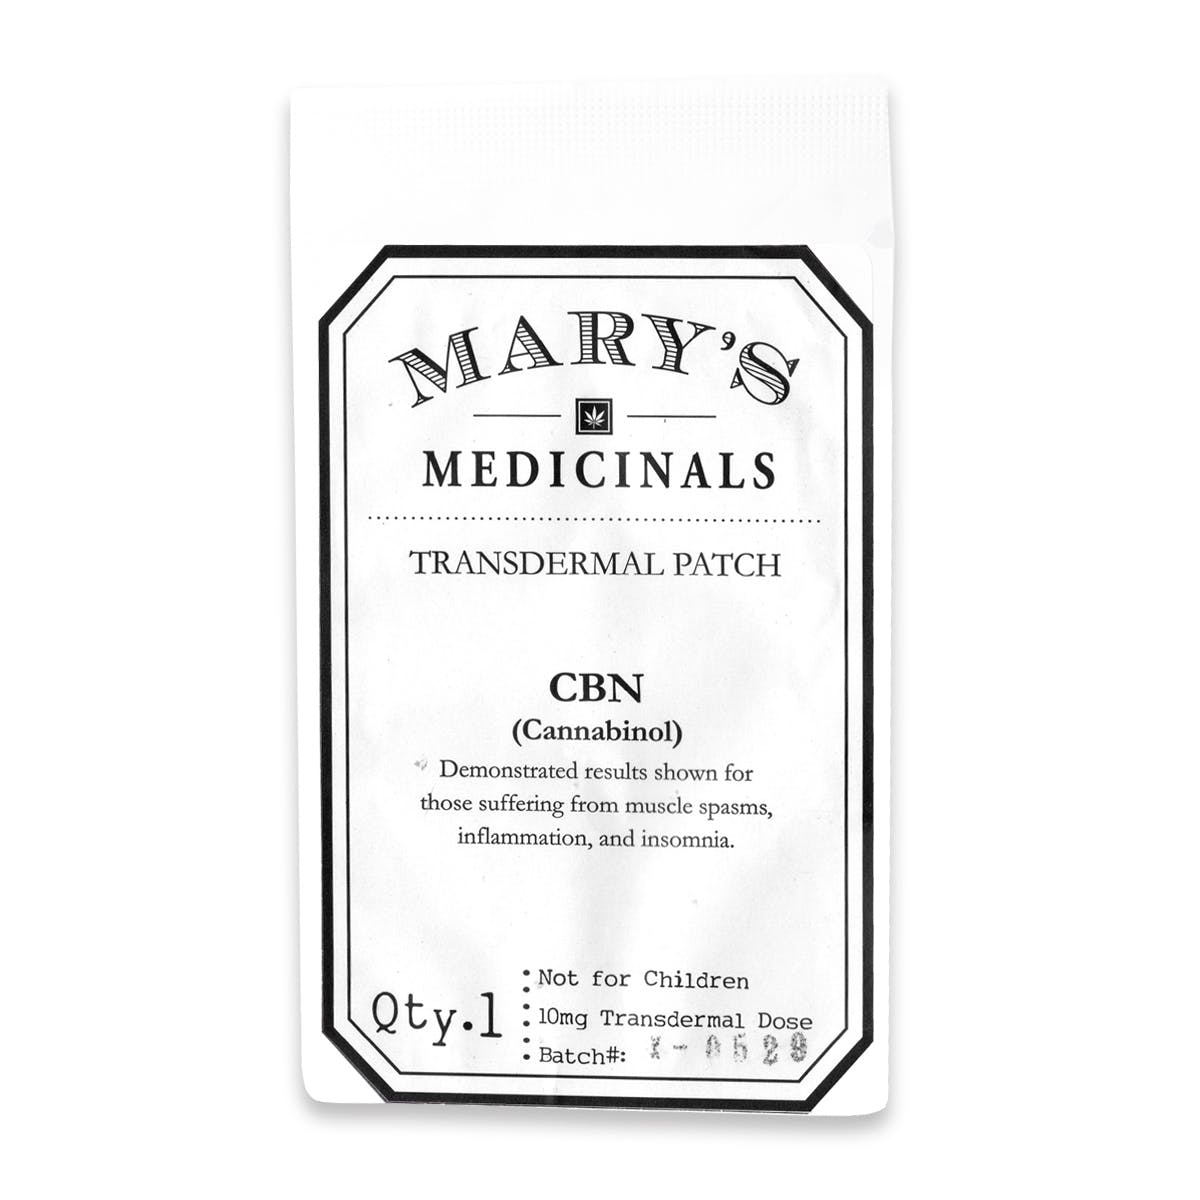 marijuana-dispensaries-root-mmc-in-boulder-cbn-transdermal-patch-2c-10mg-med